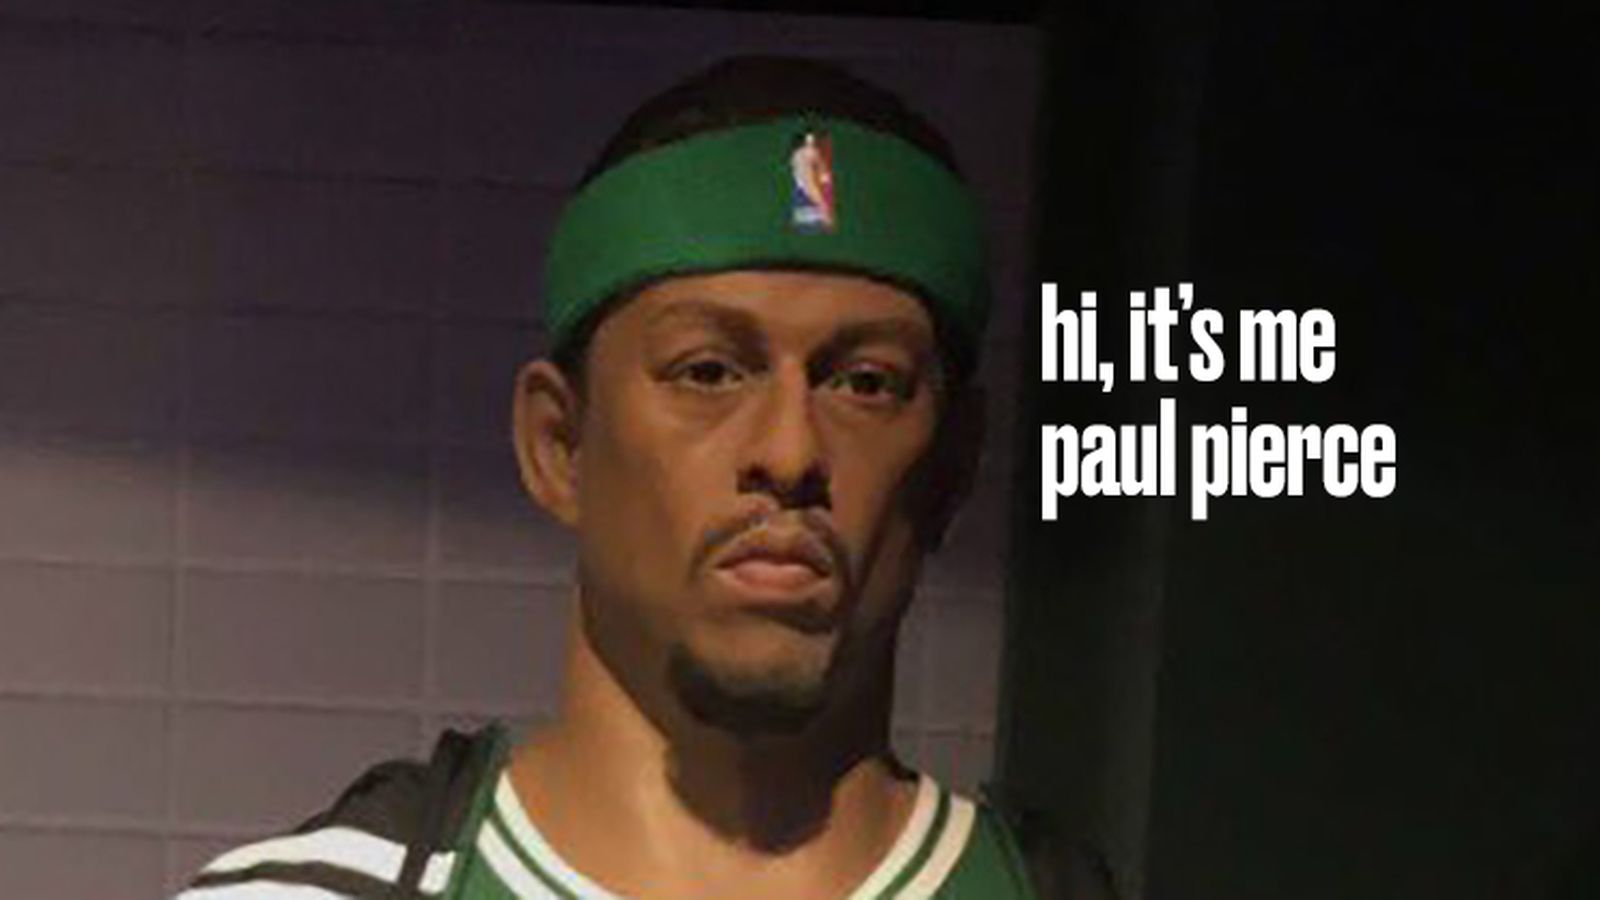 This Paul Pierce wax statue is an absolute travesty